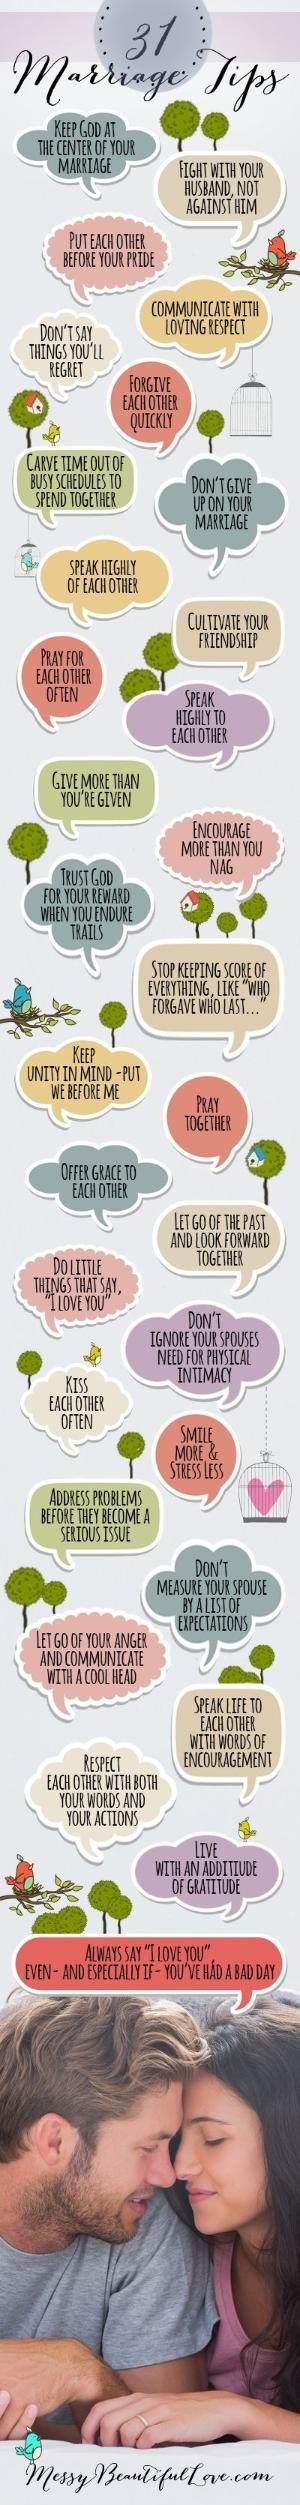 31 Marriage Tips! Maybe I can print out & put in a jar & we read one every day! by bleu.